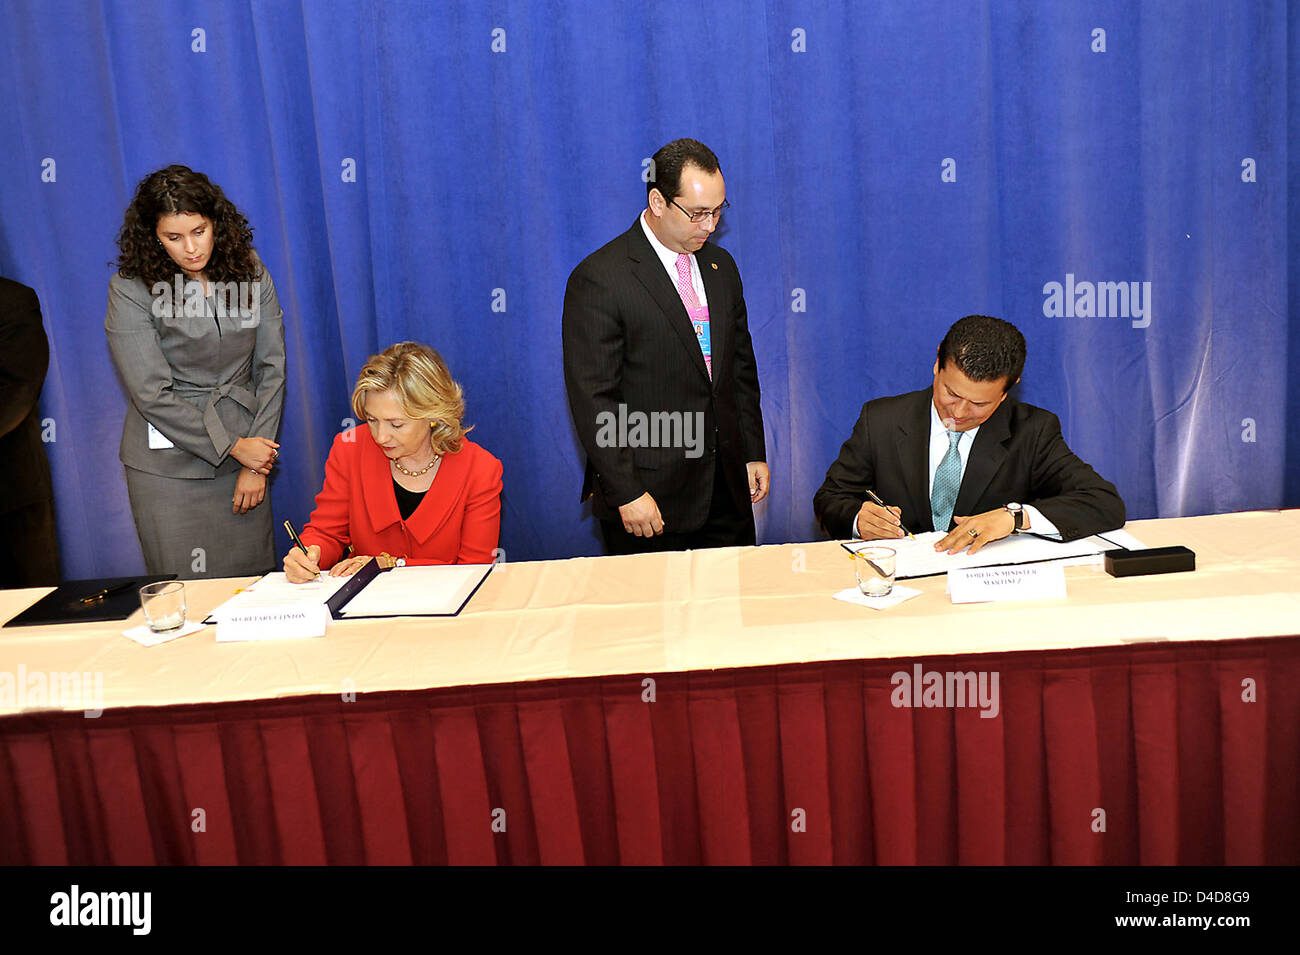 Secretary Clinton and Salvadoran Prime Minister Martinez Sign a Memorandum of Understanding - Stock Image